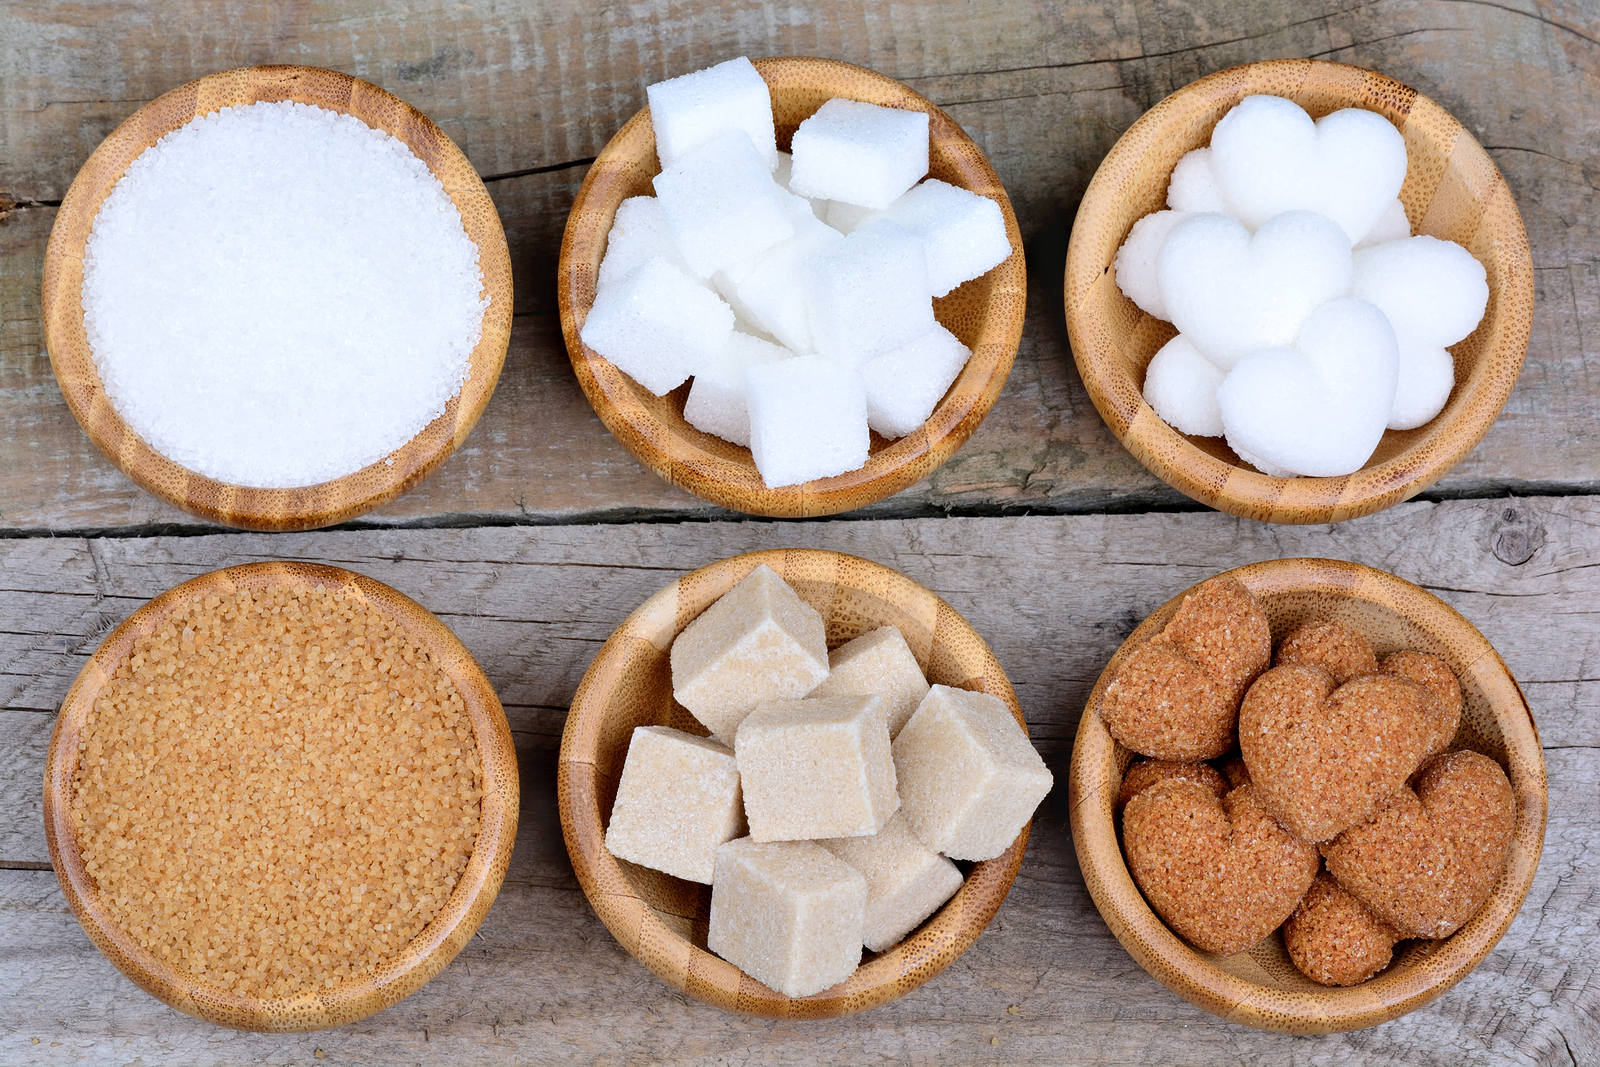 The Types of Sugar – Are All Sugars Created Equal?